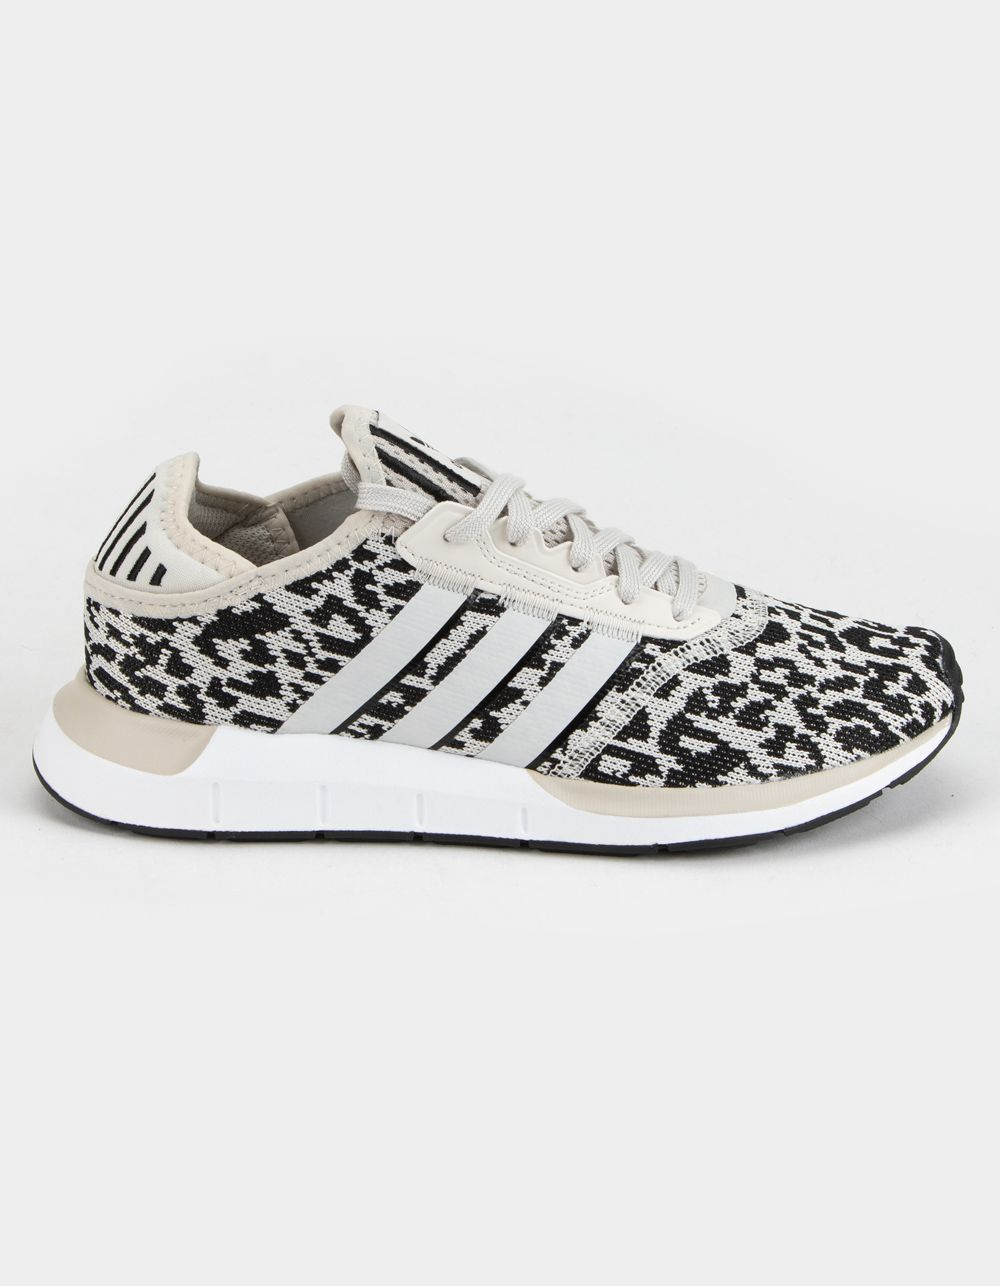 Leopard shoes, Adidas sneakers